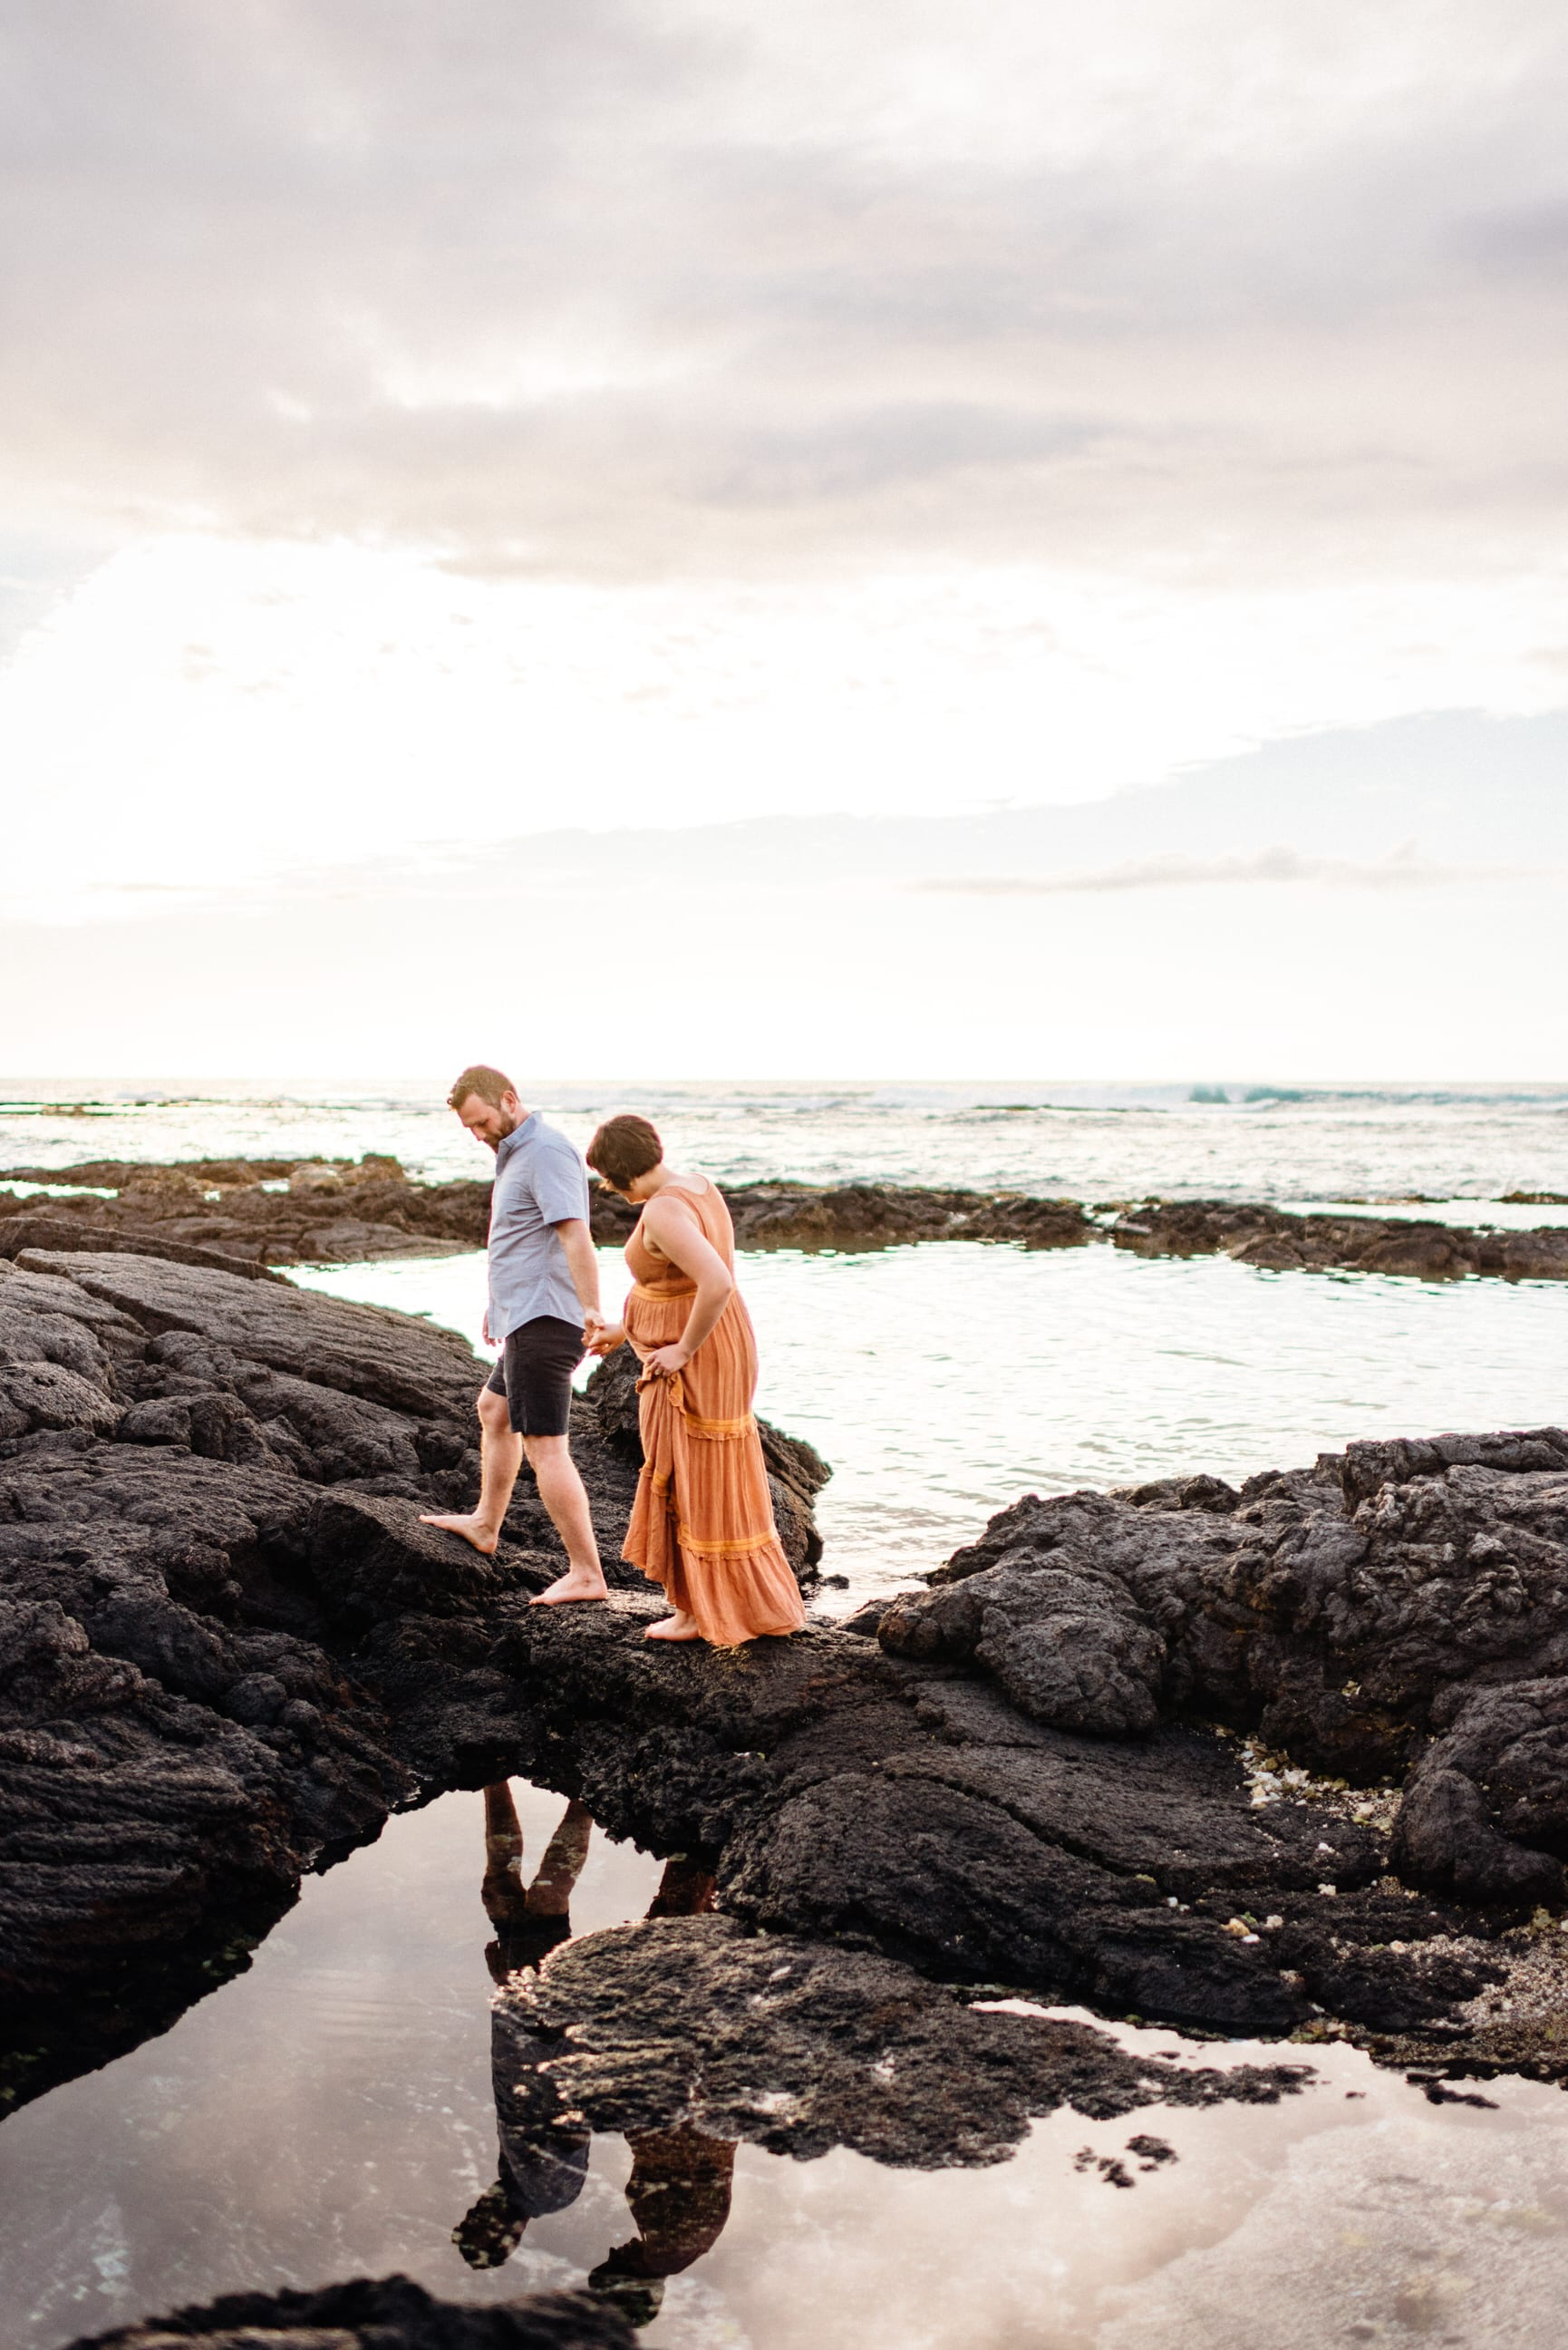 Big-Island-Photographer-Maternity-Babymoon-Hawaii-7.jpg